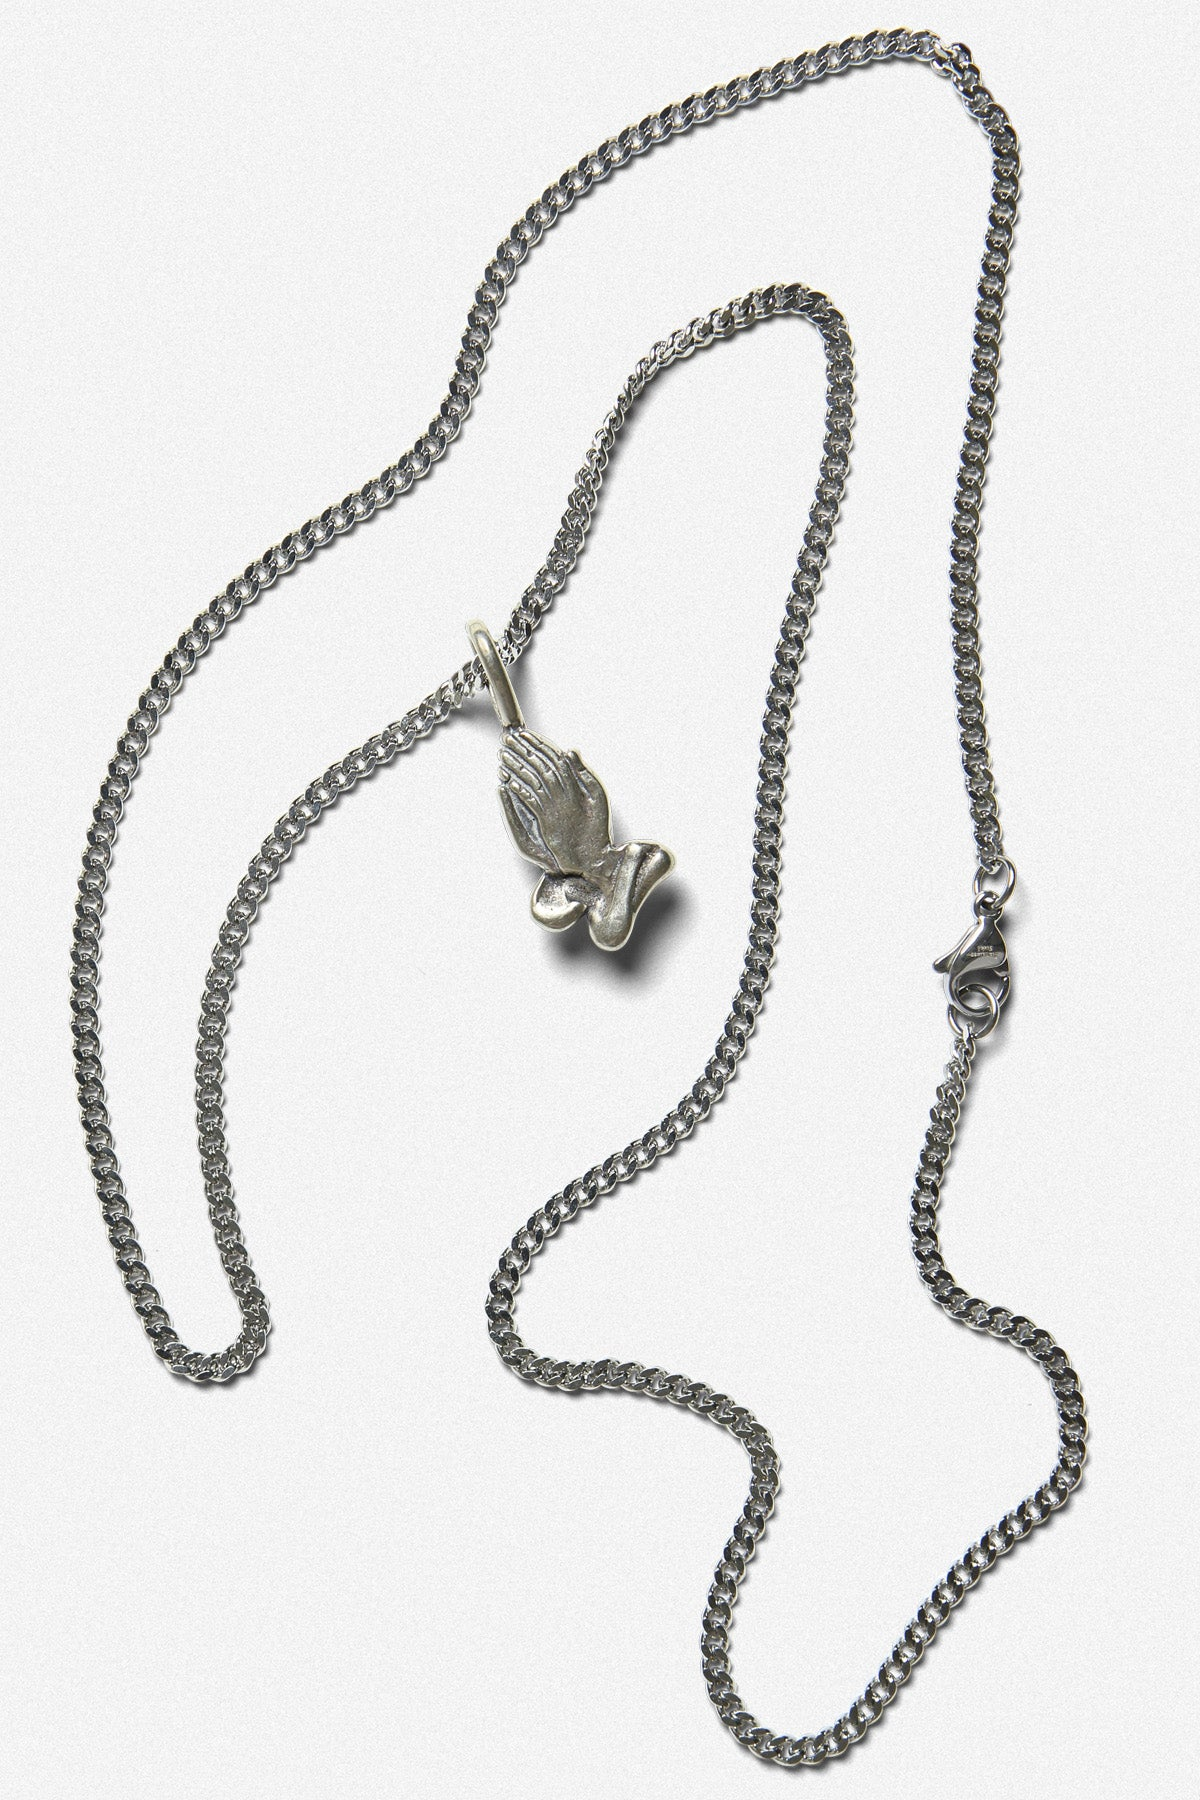 PRAYING HANDS CHARM NECKLACE IN WHITE BRONZE - Fortune Goods